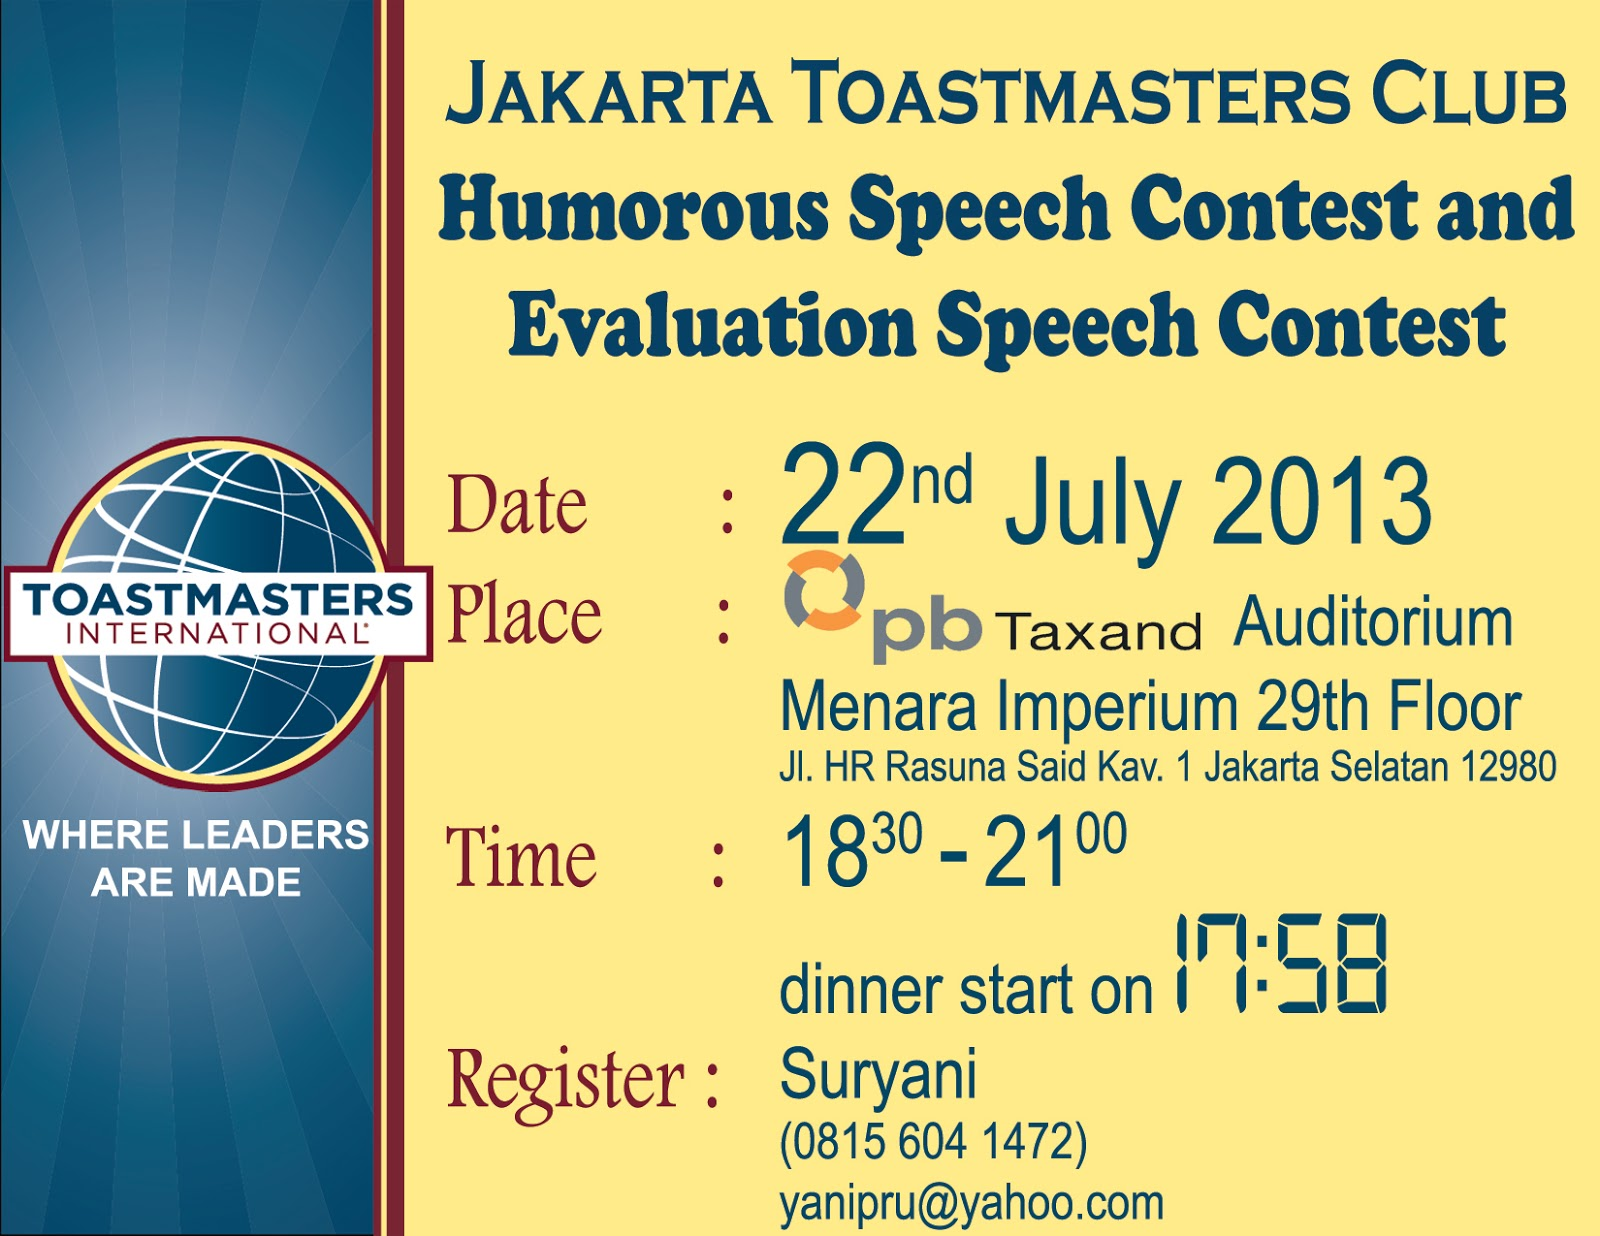 Research speech topics toastmasters - Toastmasters Pathways